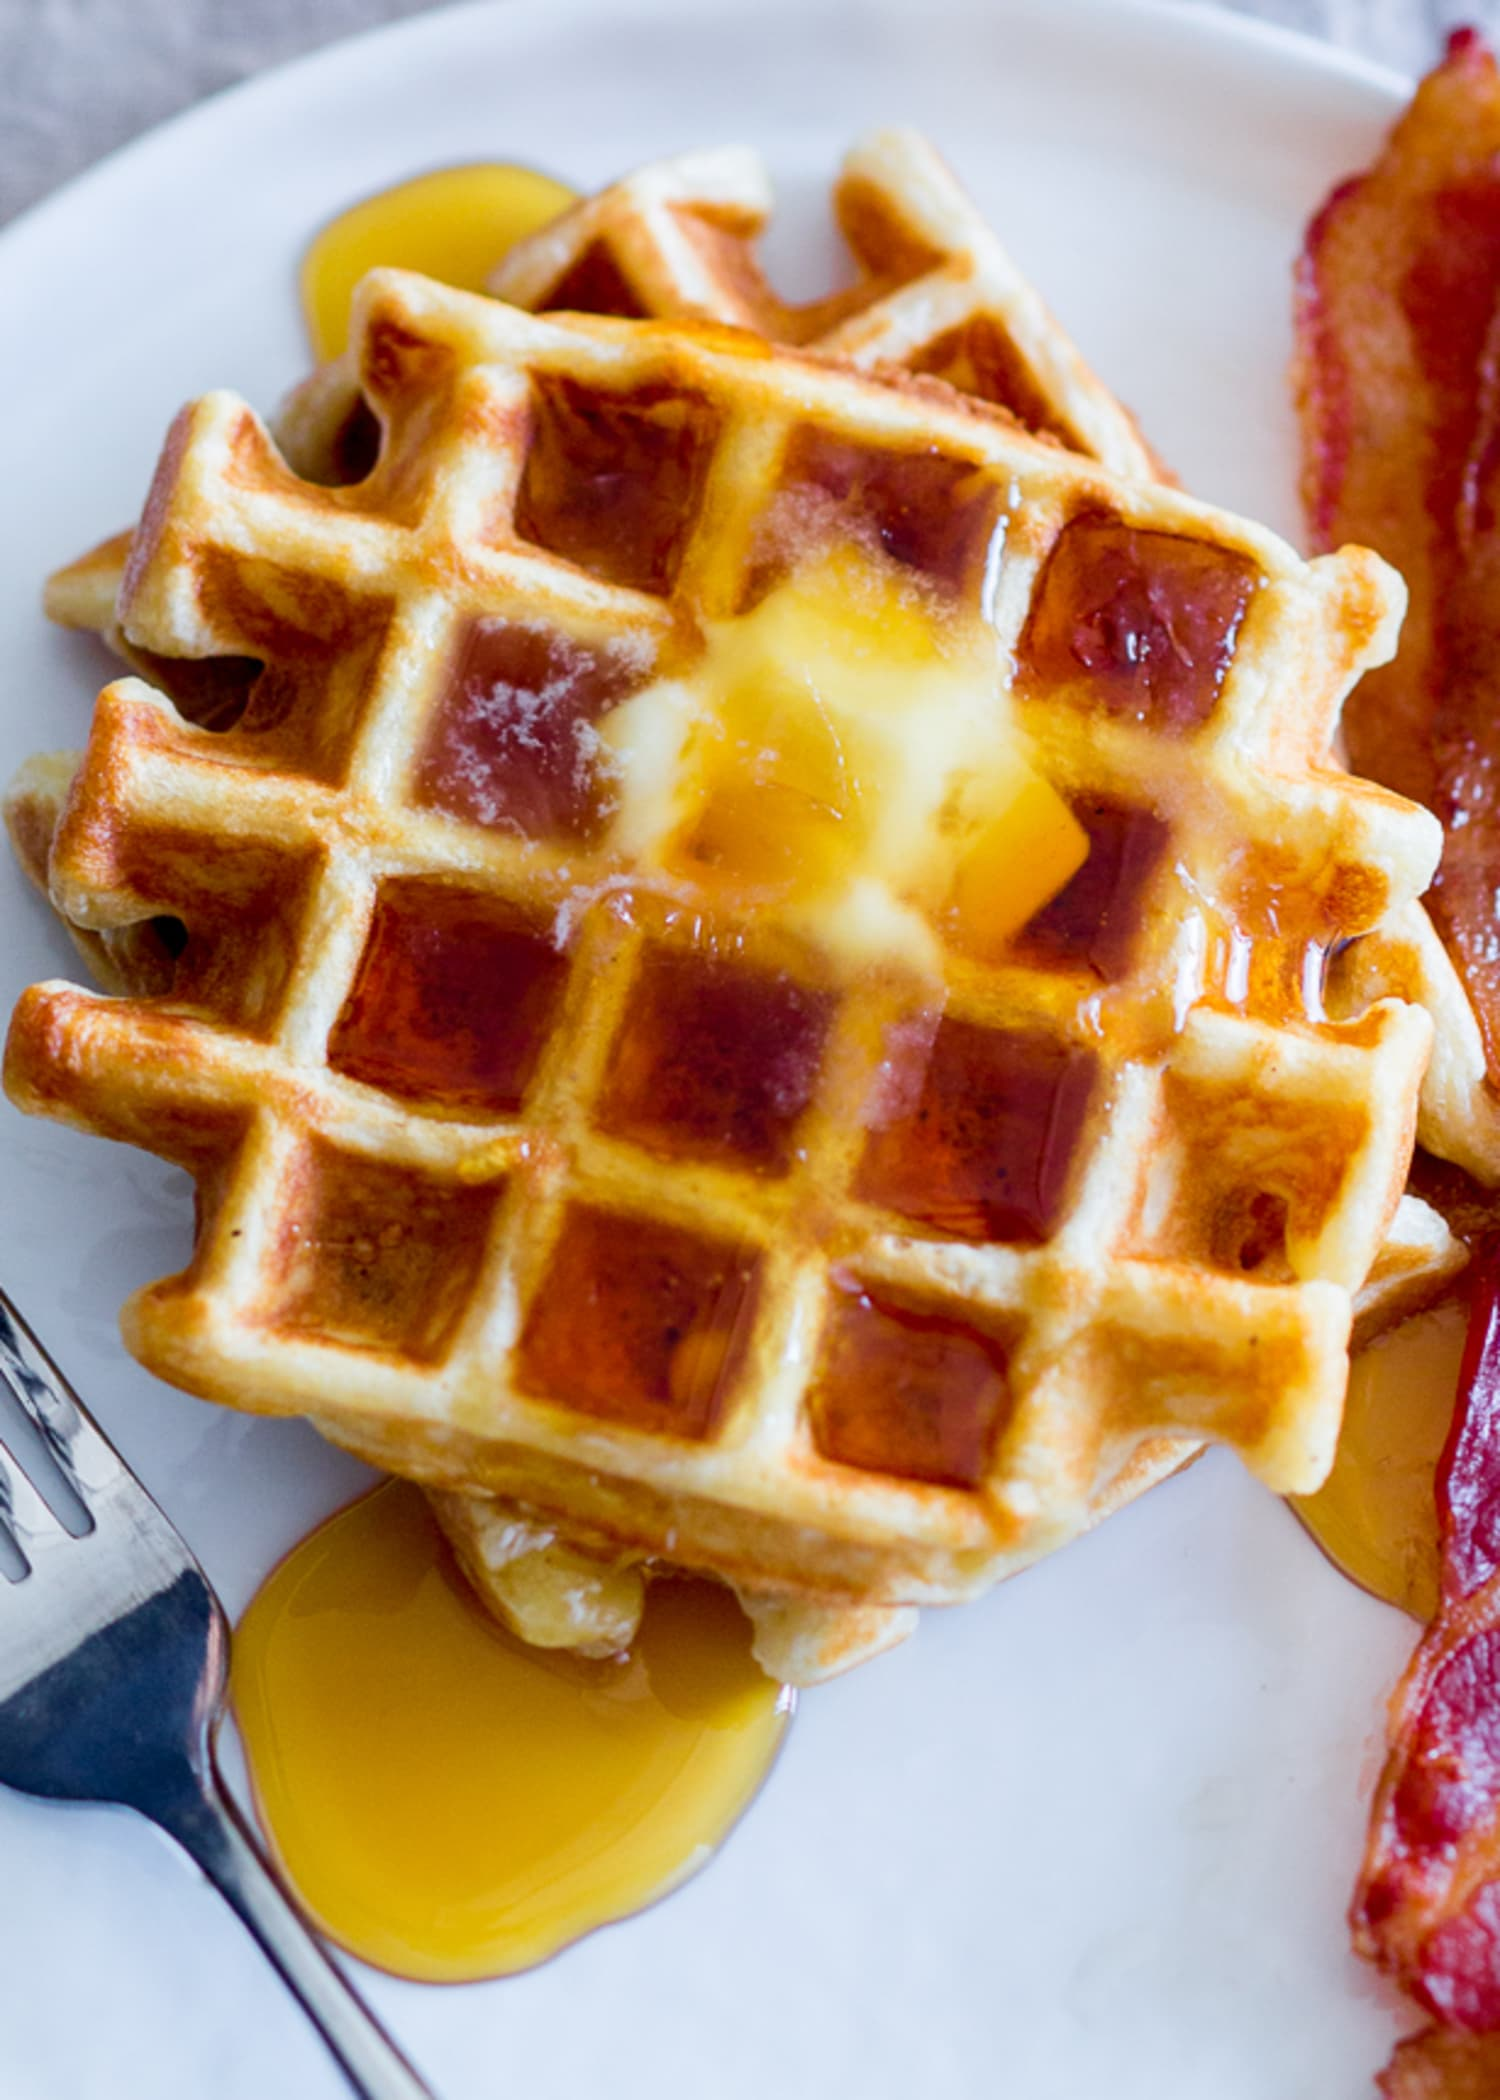 PSA: You Can Make Waffles with Just One Ingredient